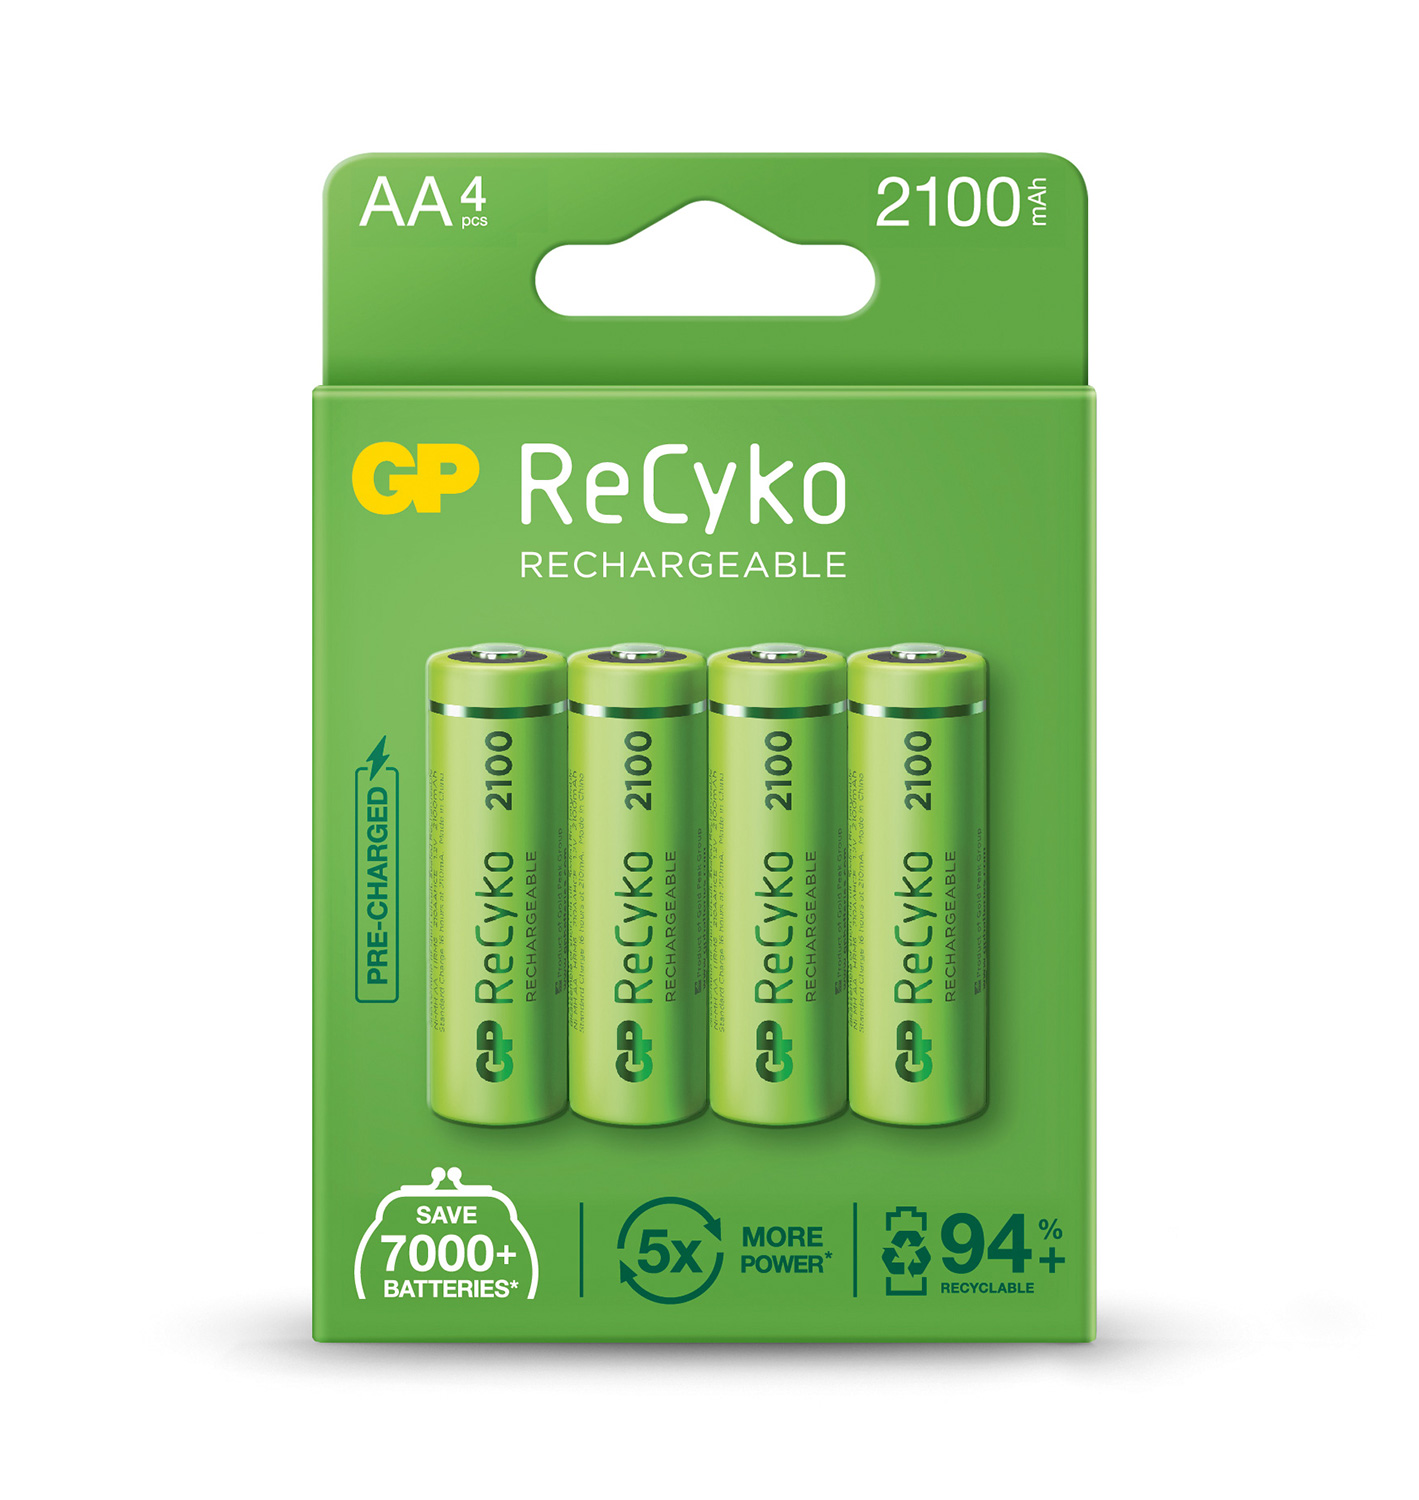 ReCyko+ NiMH Rechargeable Batteries, 155mAh, PP3 per Blister